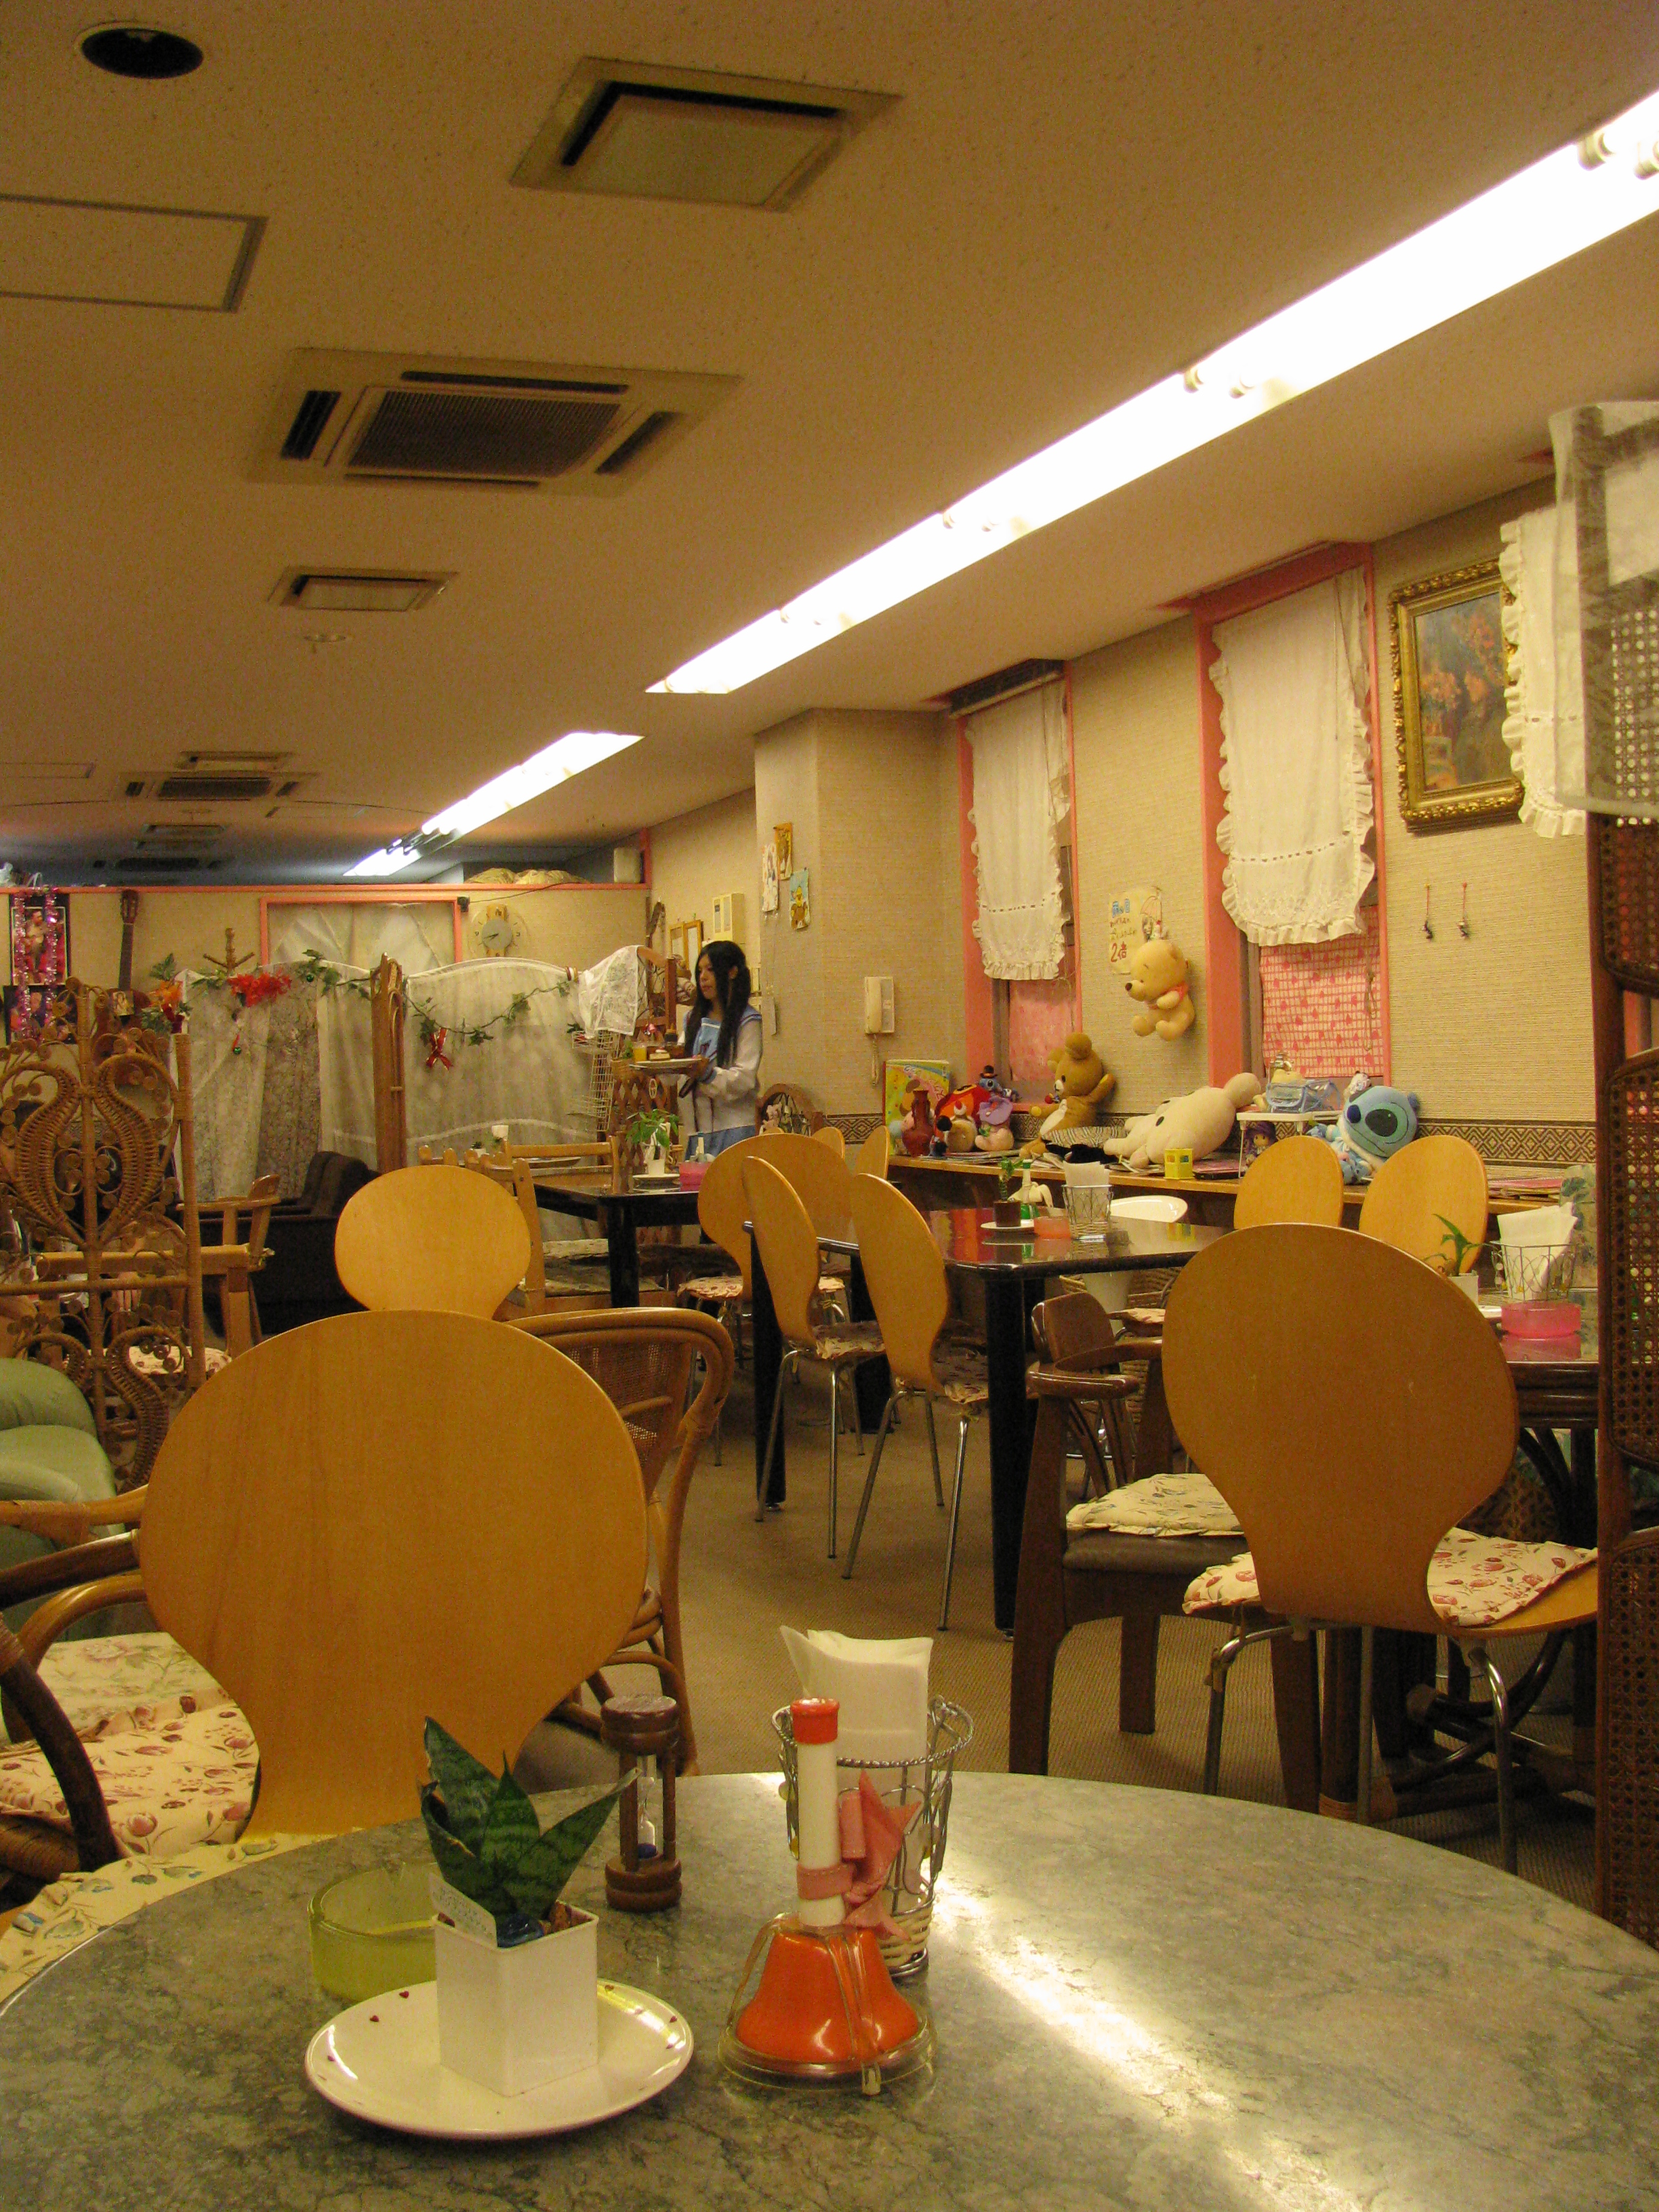 Maid Cafe Wikipedia